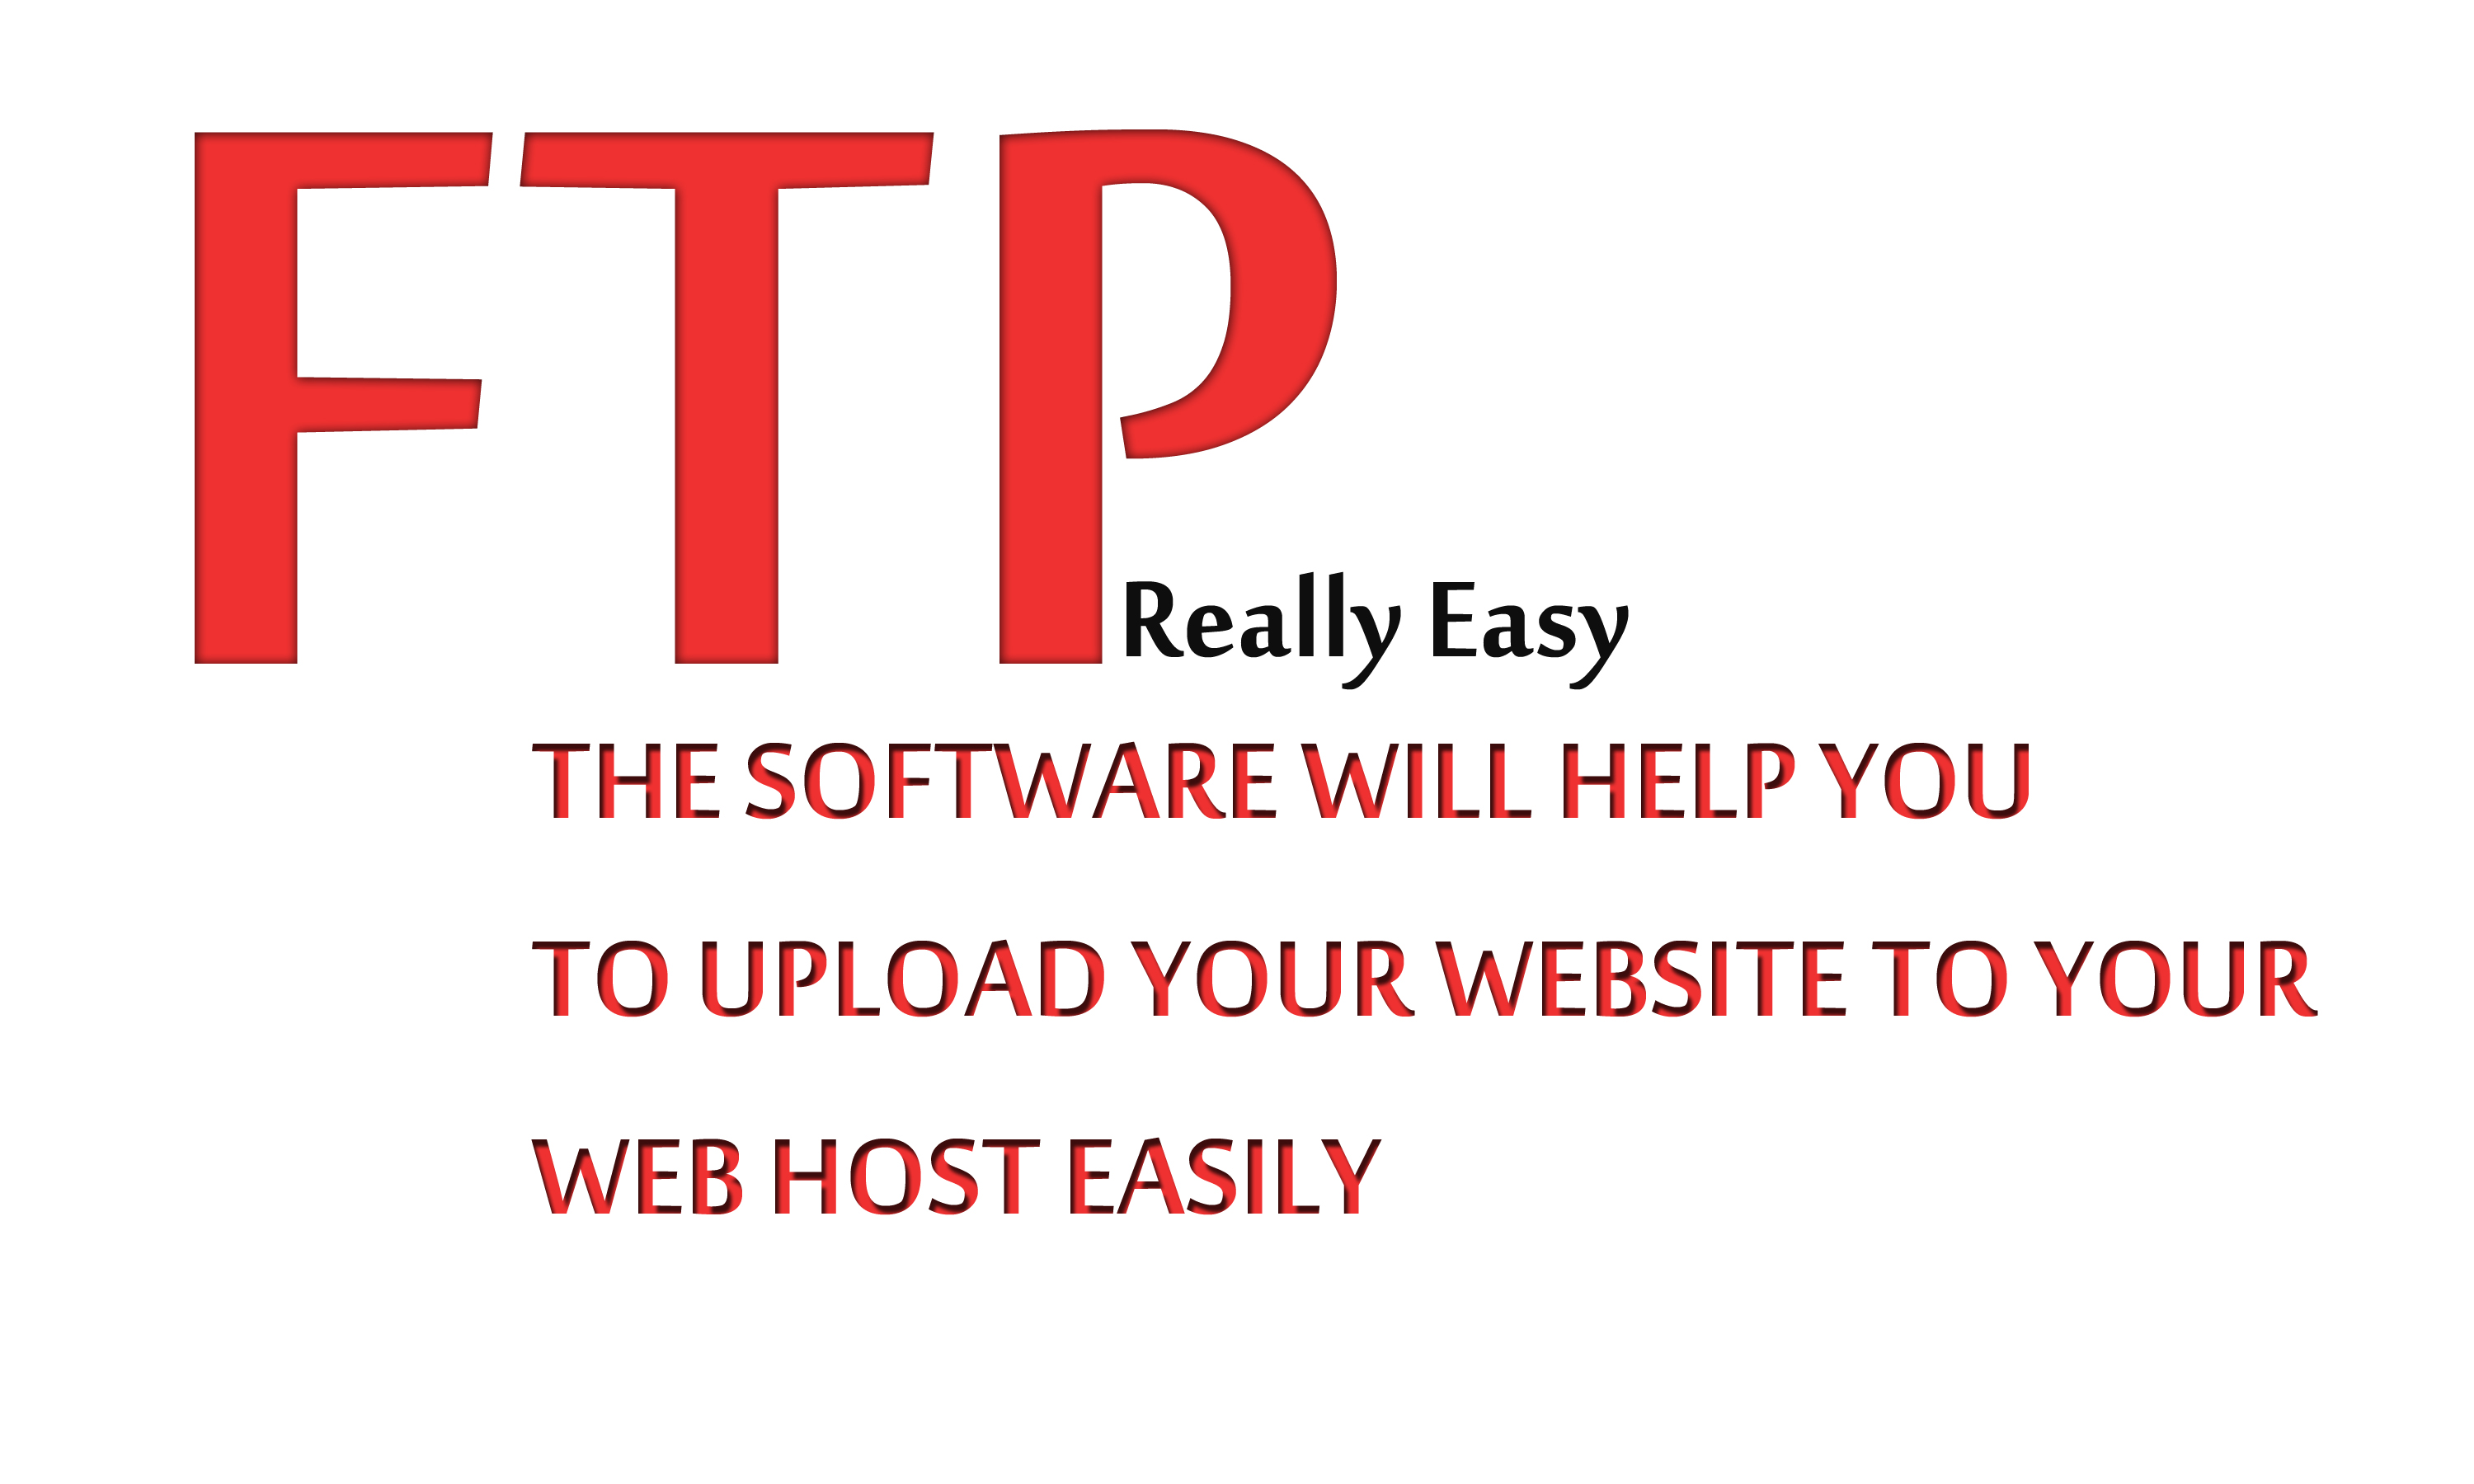 FTP upload your website to your web host easily